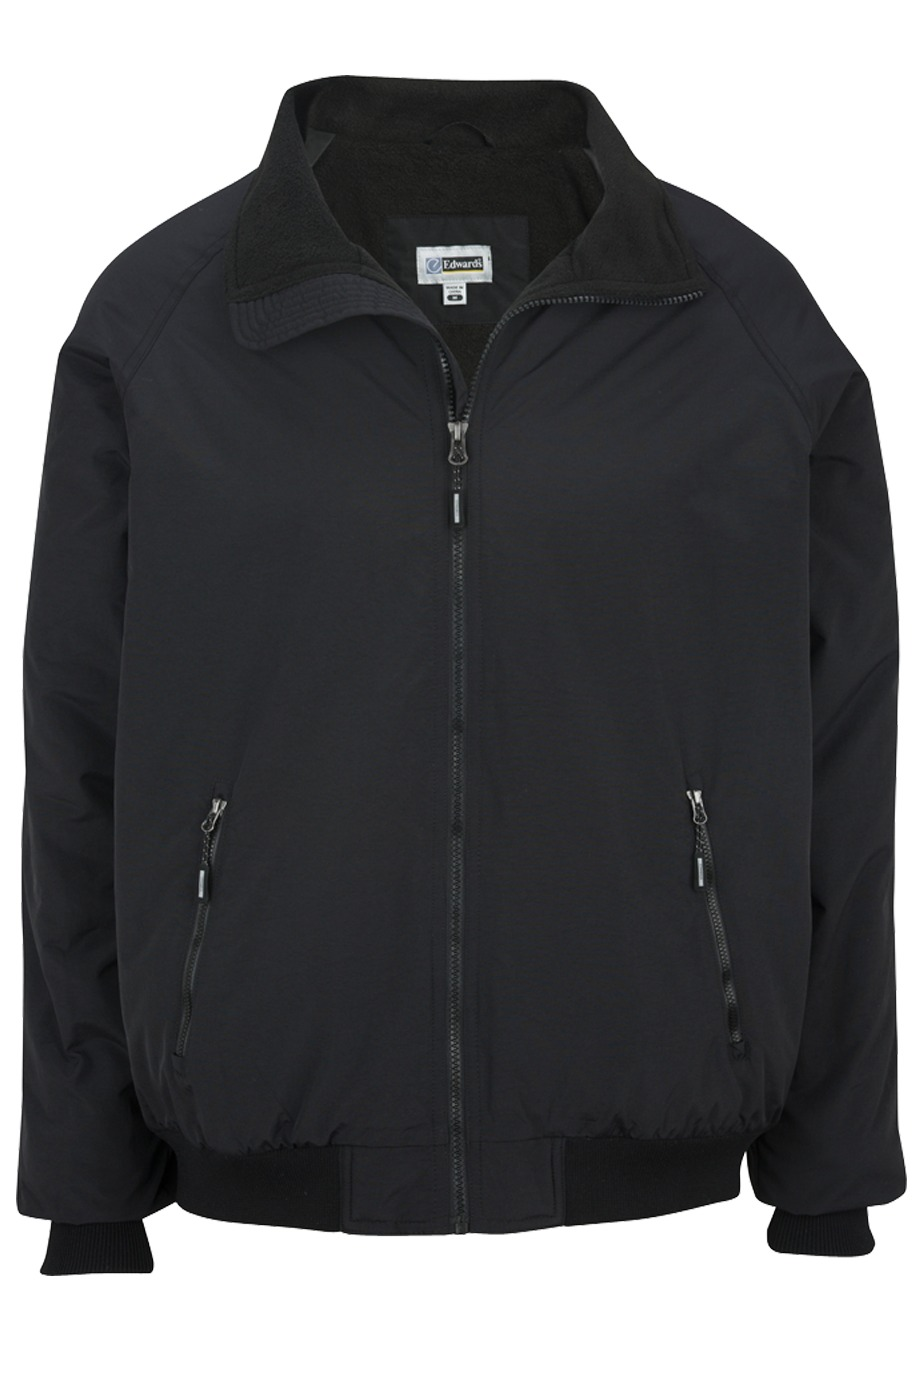 Edwards Garment 3410 - Three Seasons Jacket